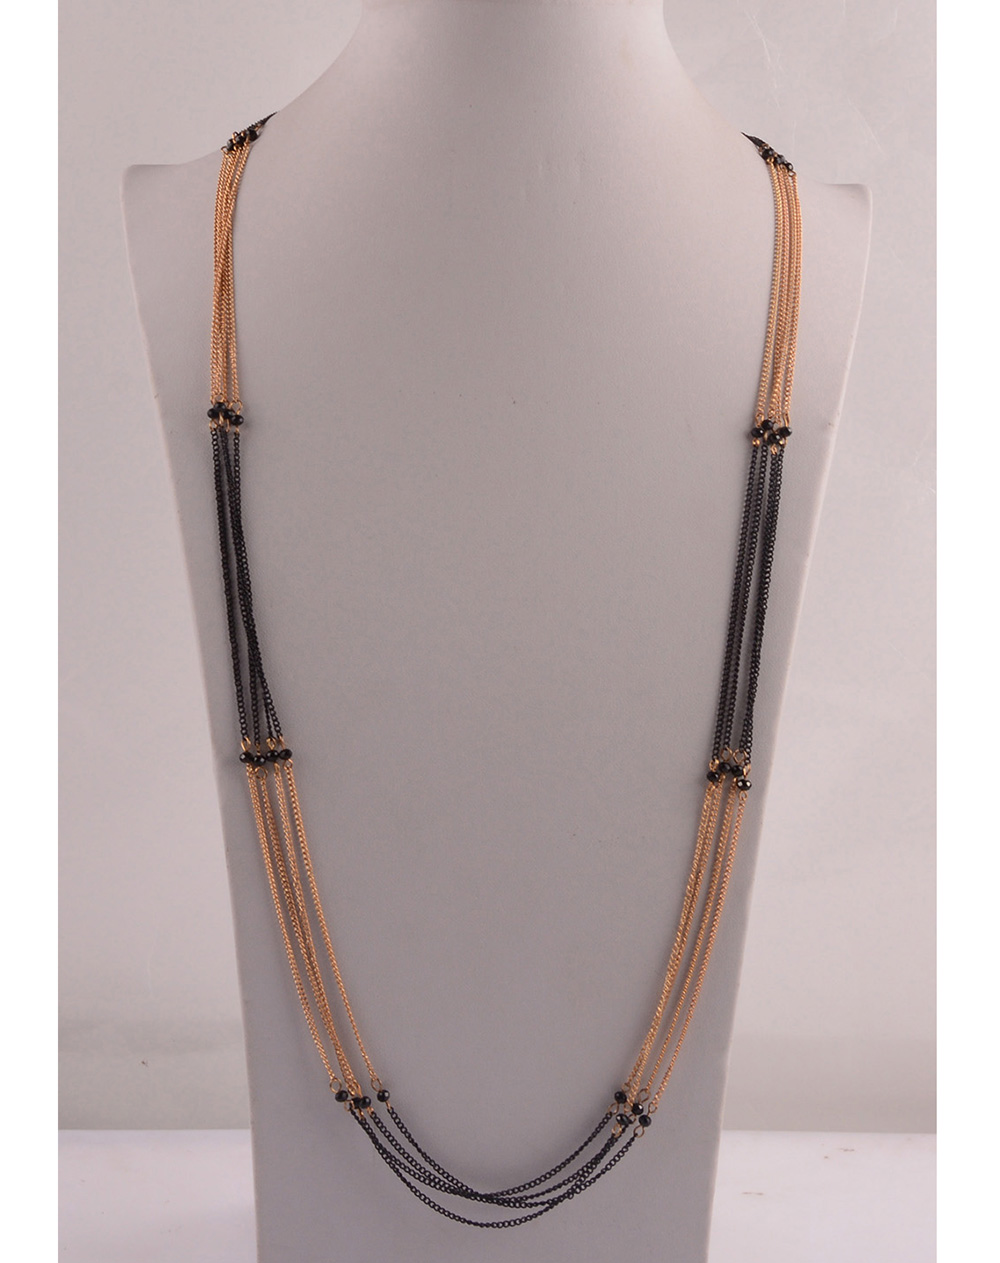 907522 Lady Long Necklace